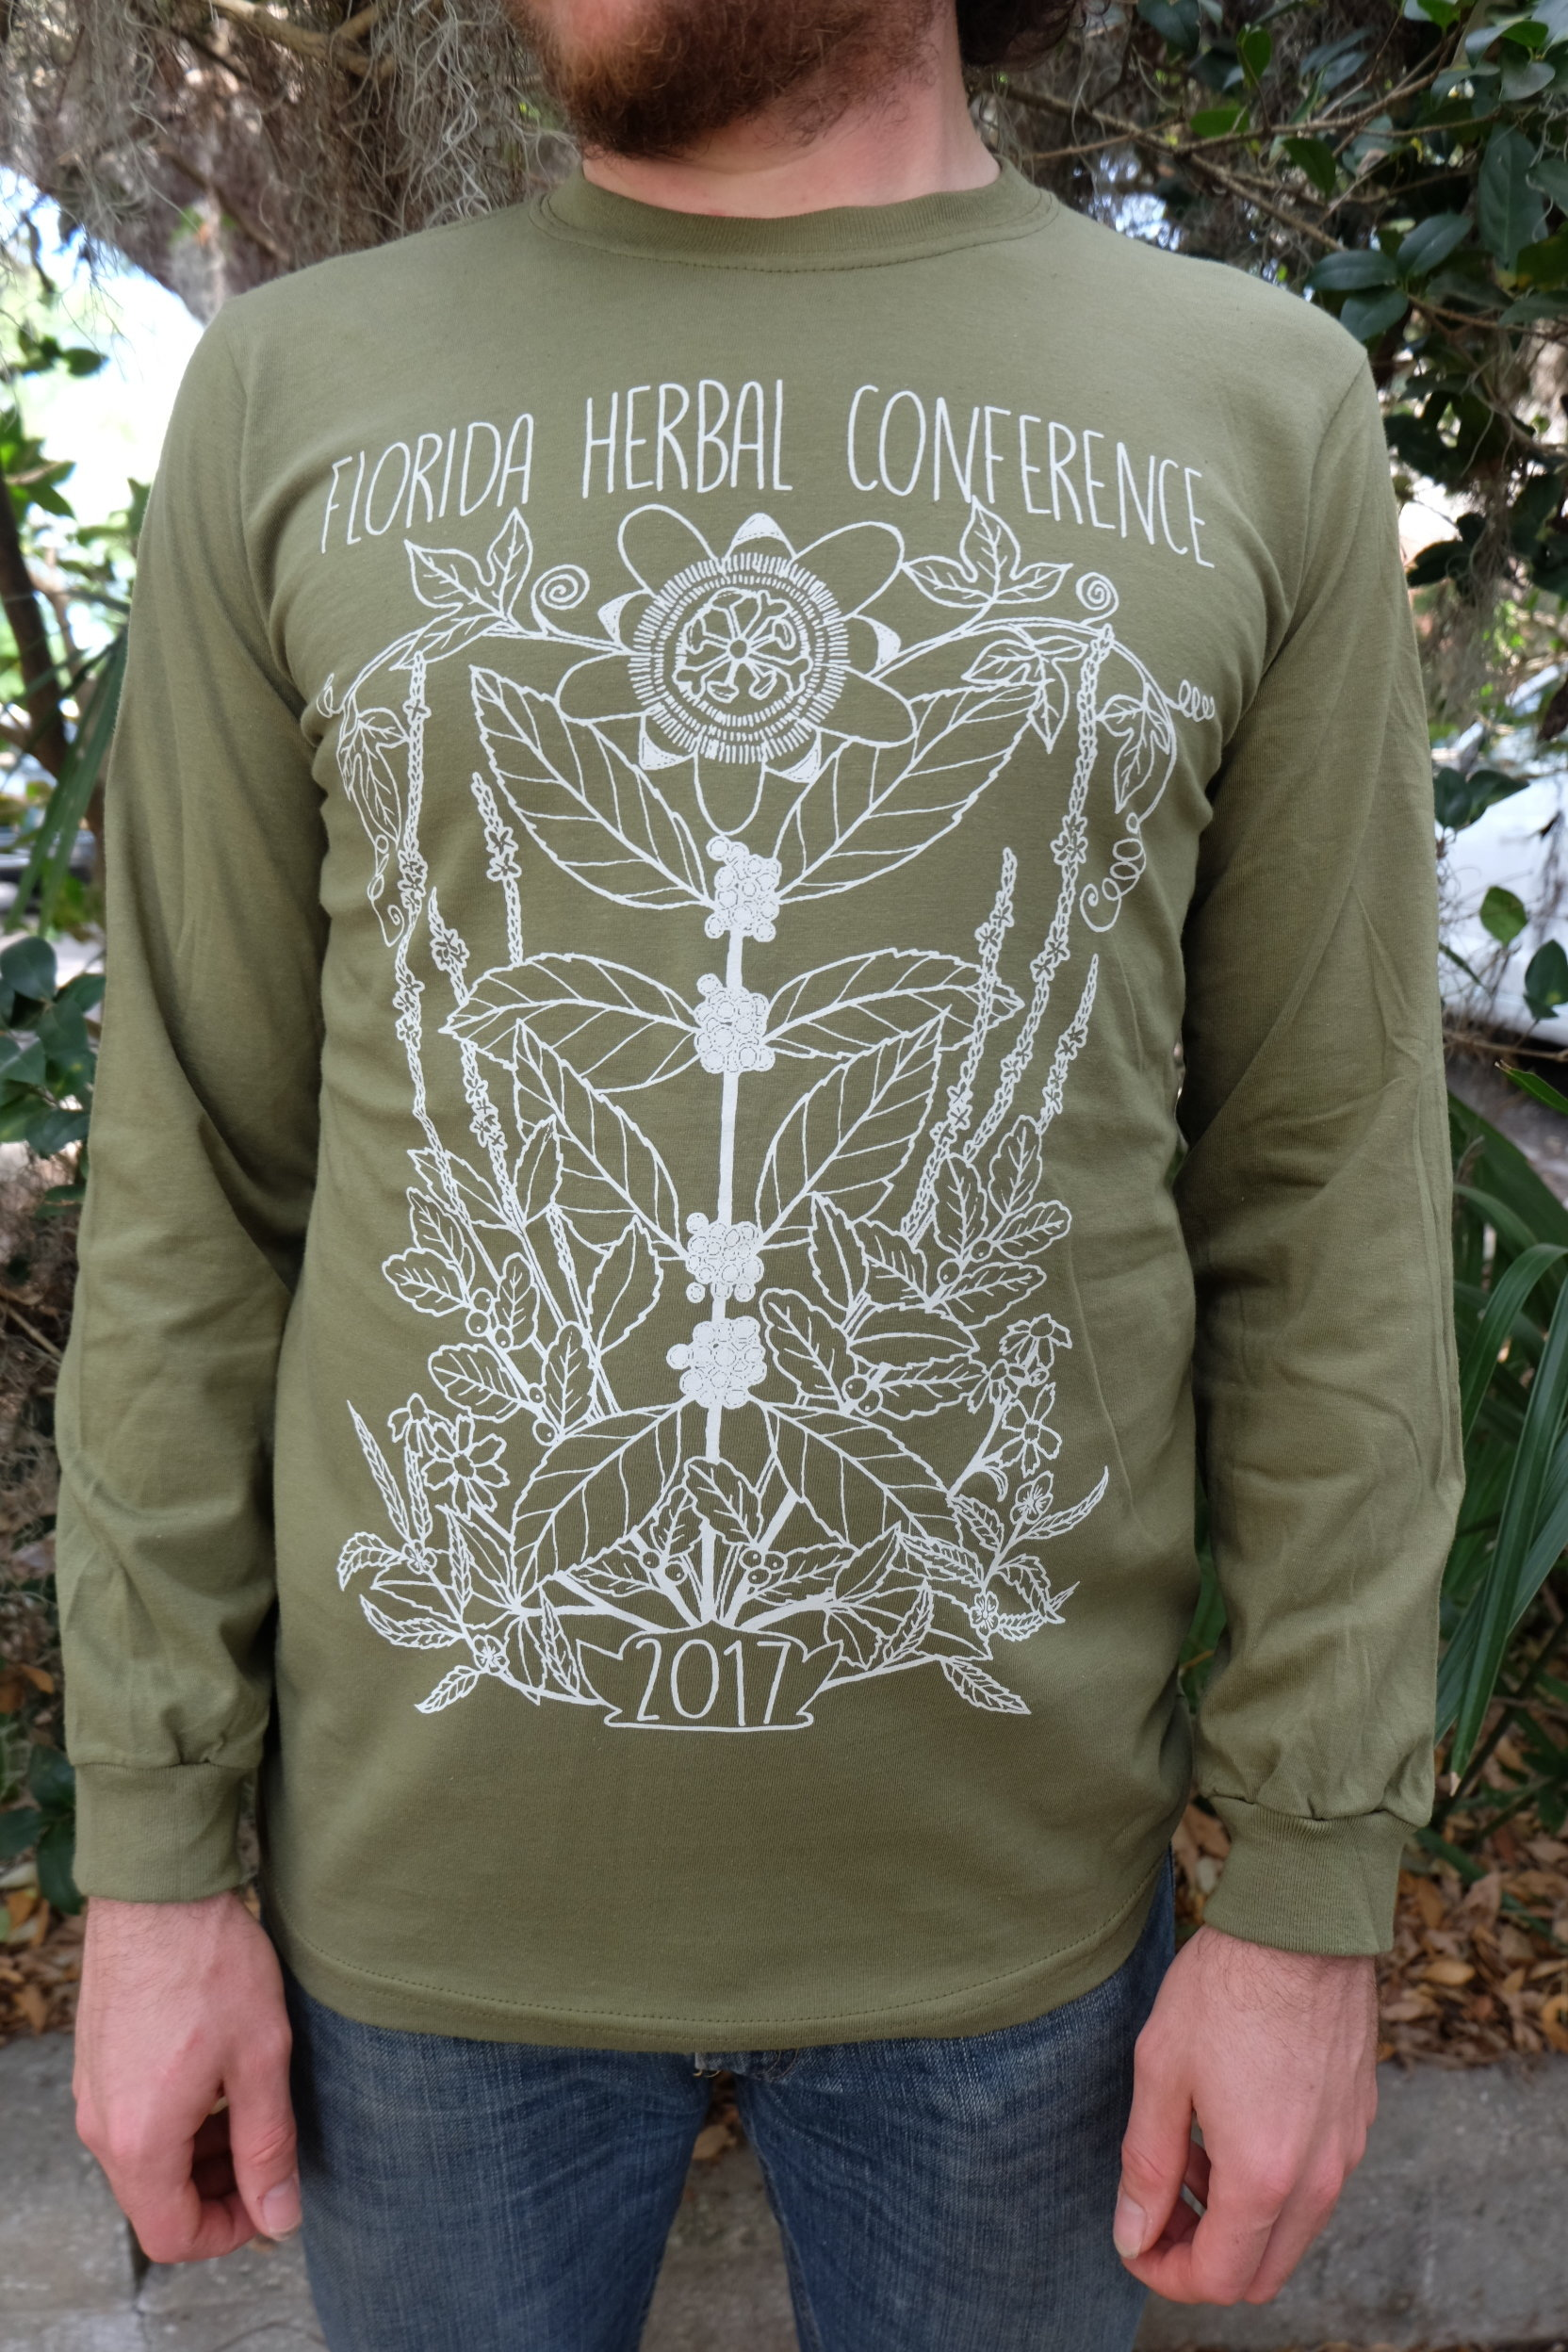 2017 Florida Herbal Conference Unisex Long Sleeved Tee